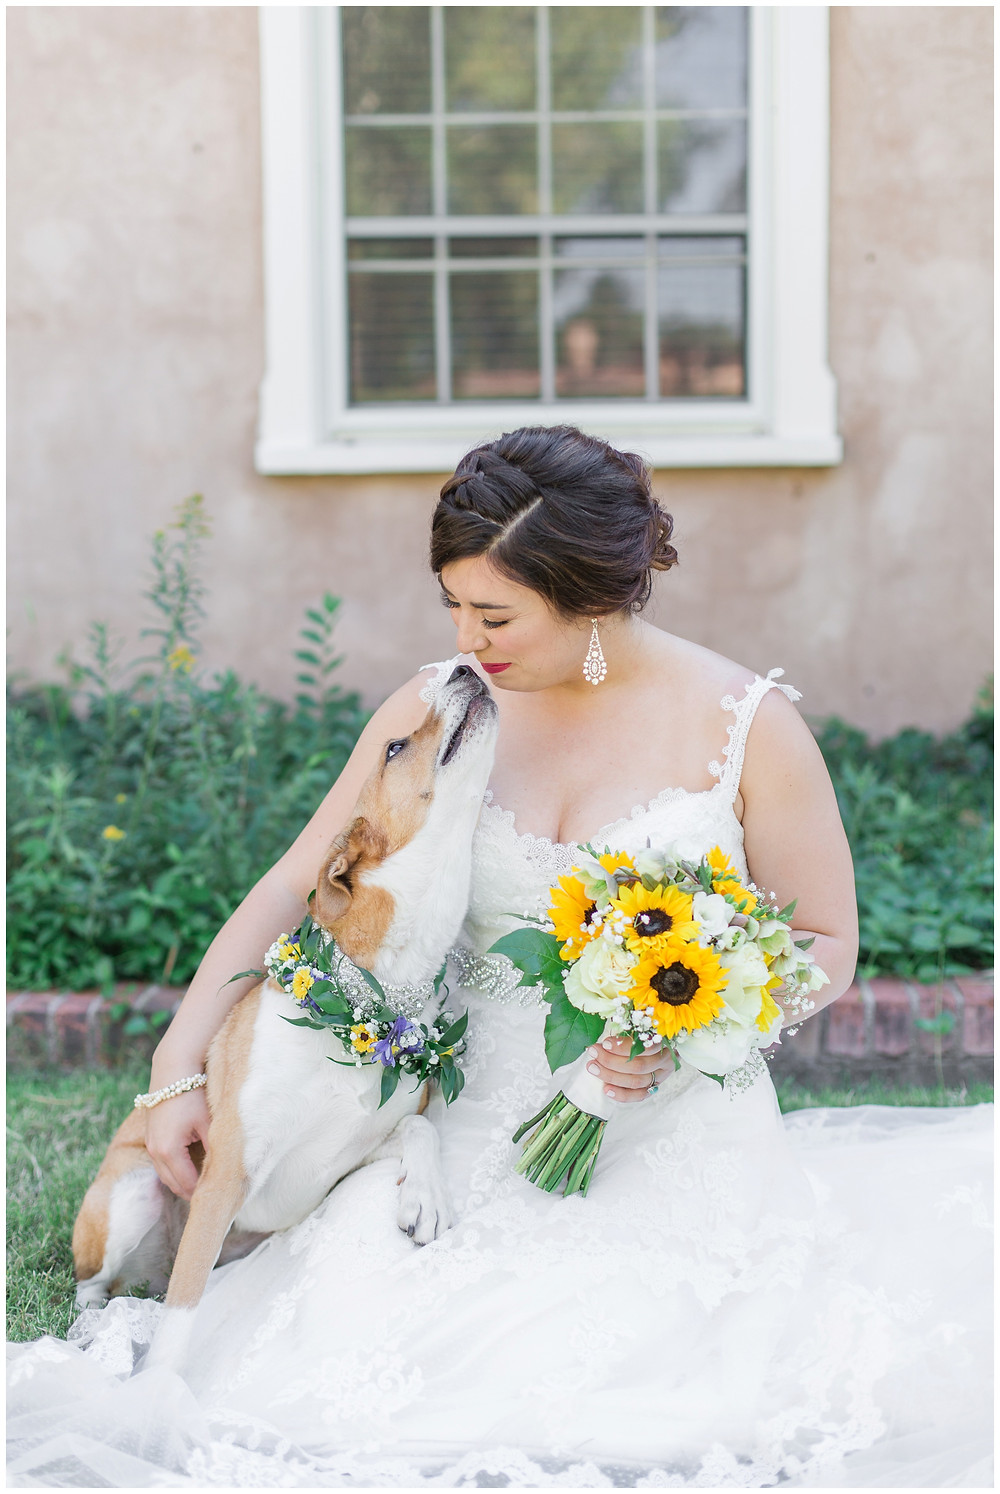 Wedding at Los Poblanos. Summer wedding New mexico. Outdoor wedding venue albuquerque. New Mexico Wedding Photographer. bride and her dog